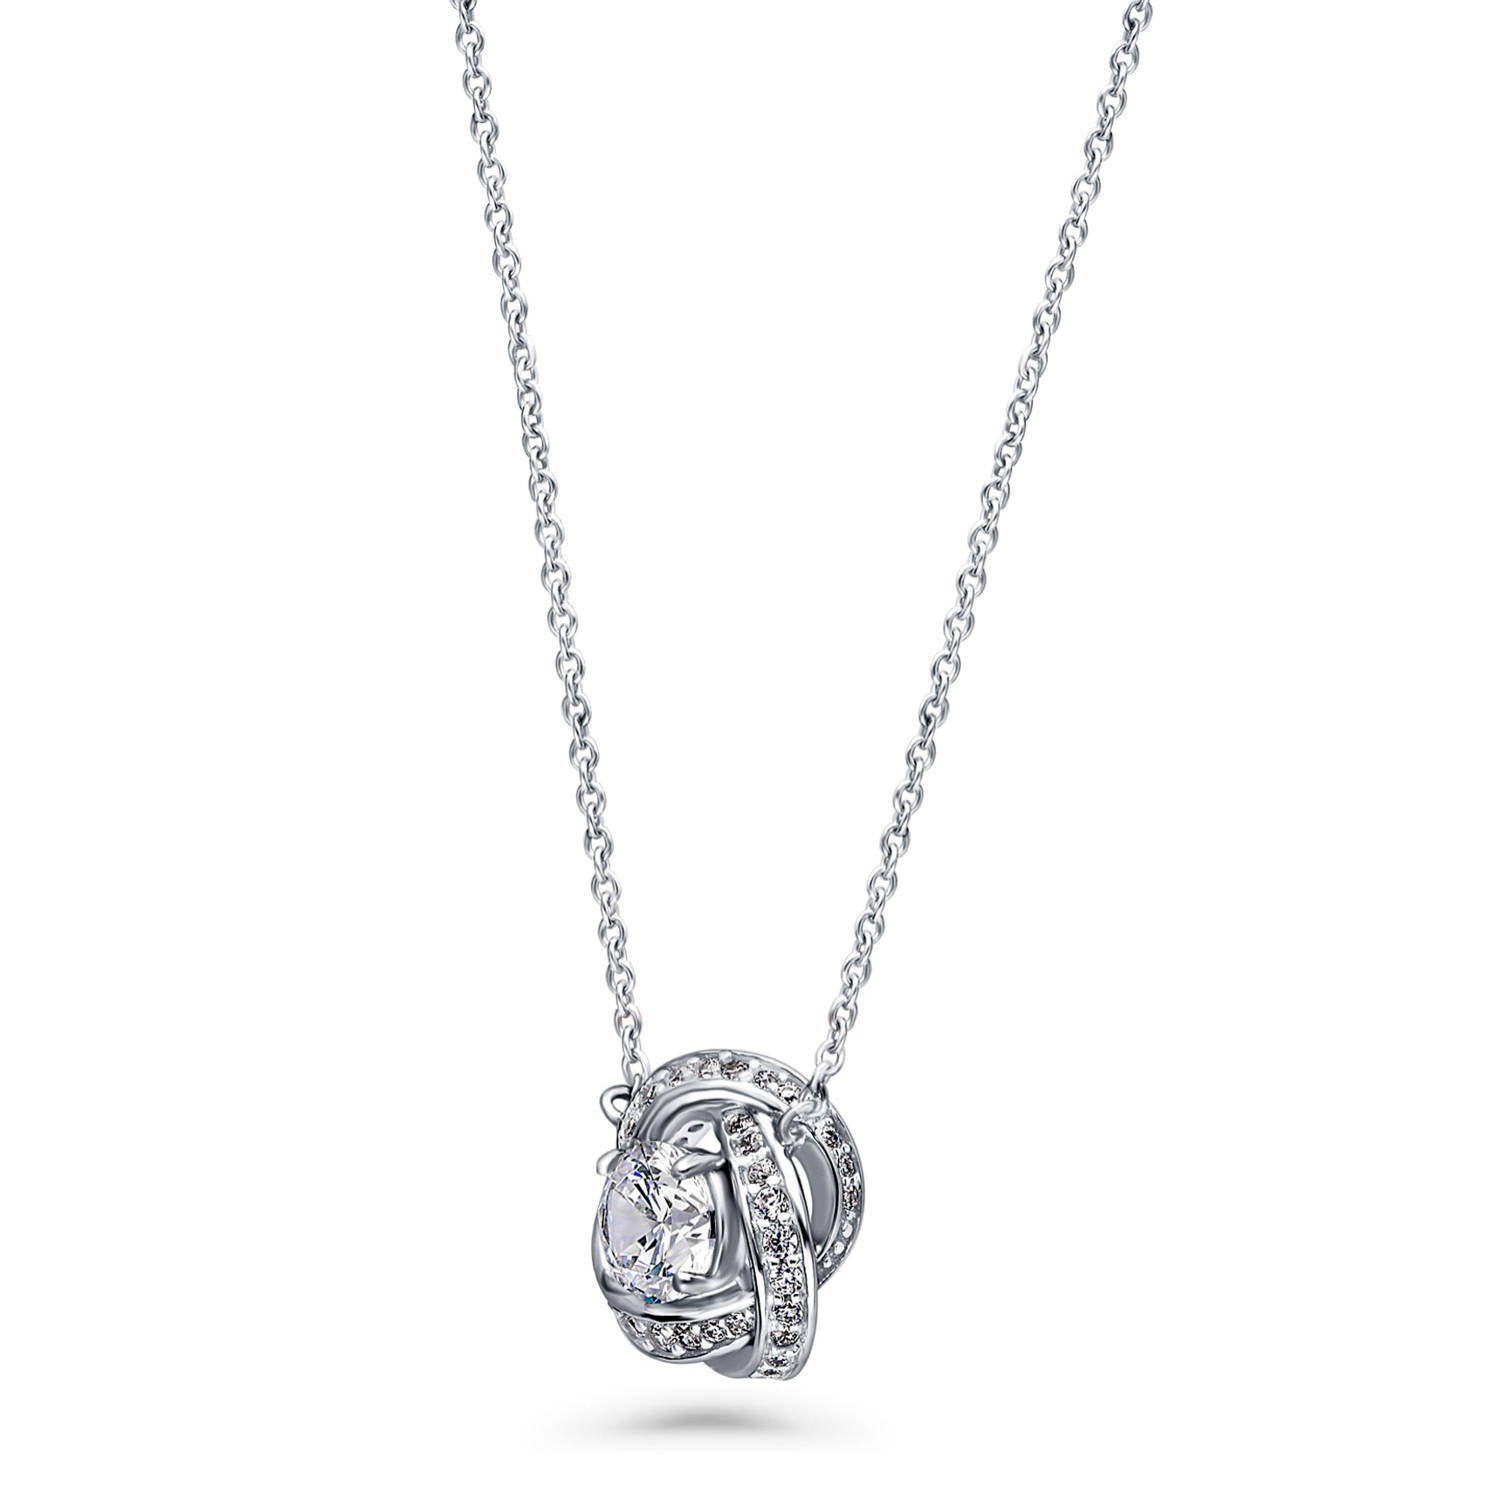 BERRICLE Rhodium Plated Sterling Silver Cubic Zirconia CZ Woven Love Knot Wedding Pendant Necklace